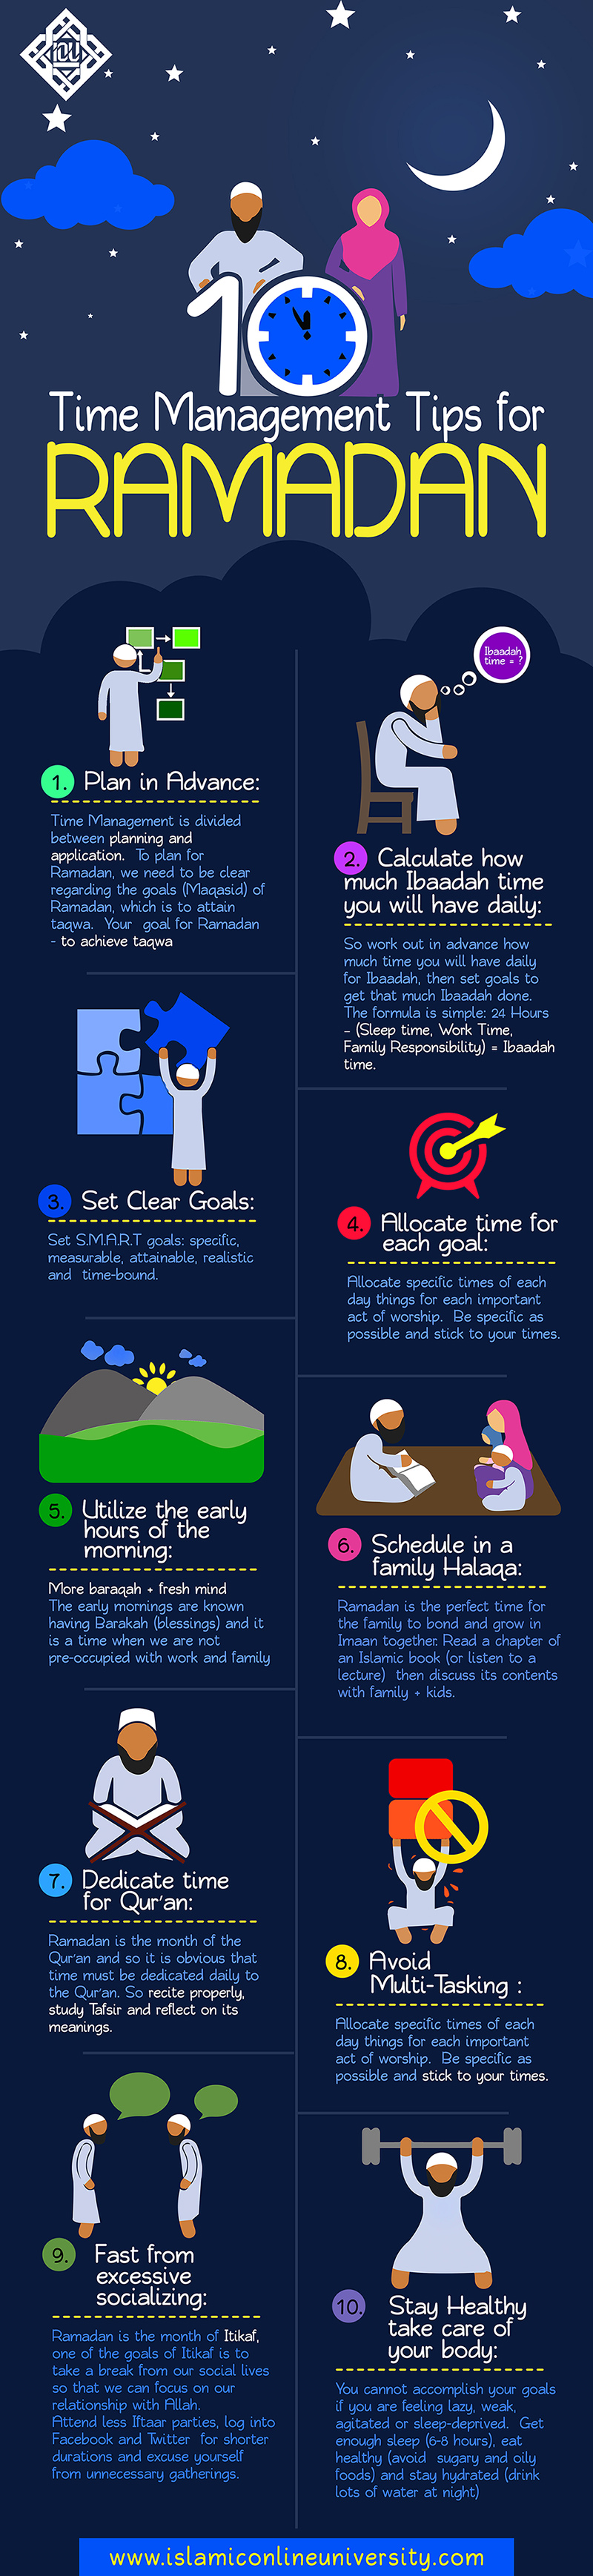 10-Time-Management-Tips-for-Ramadan